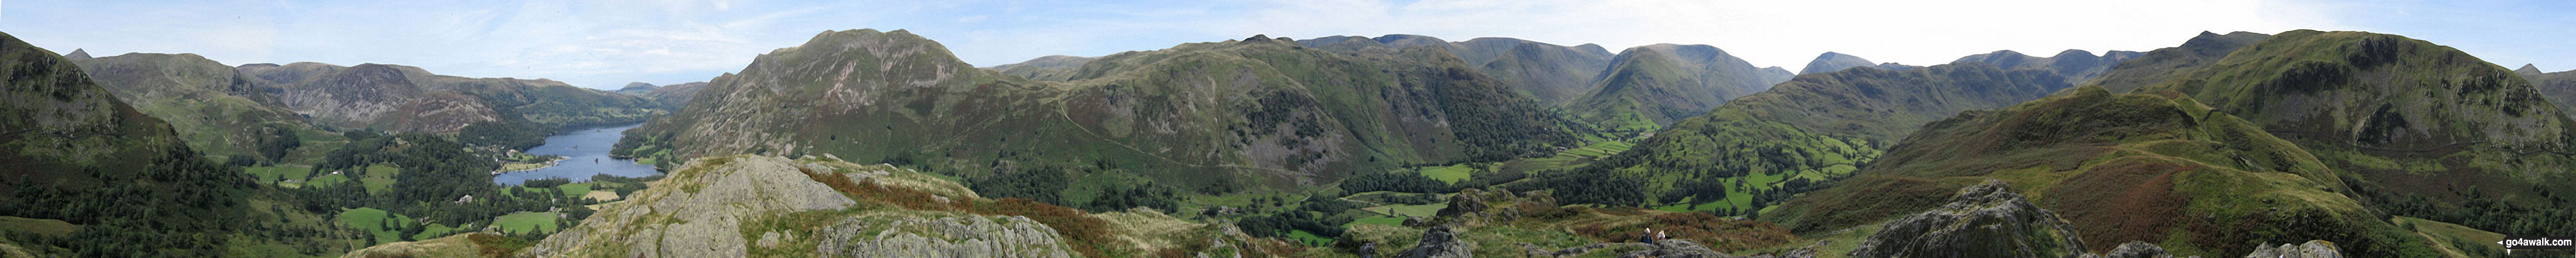 Walk c264 The Grisedale Round from Patterdale - 360 panorama taken from the top of Arnison Crag, Patterdale